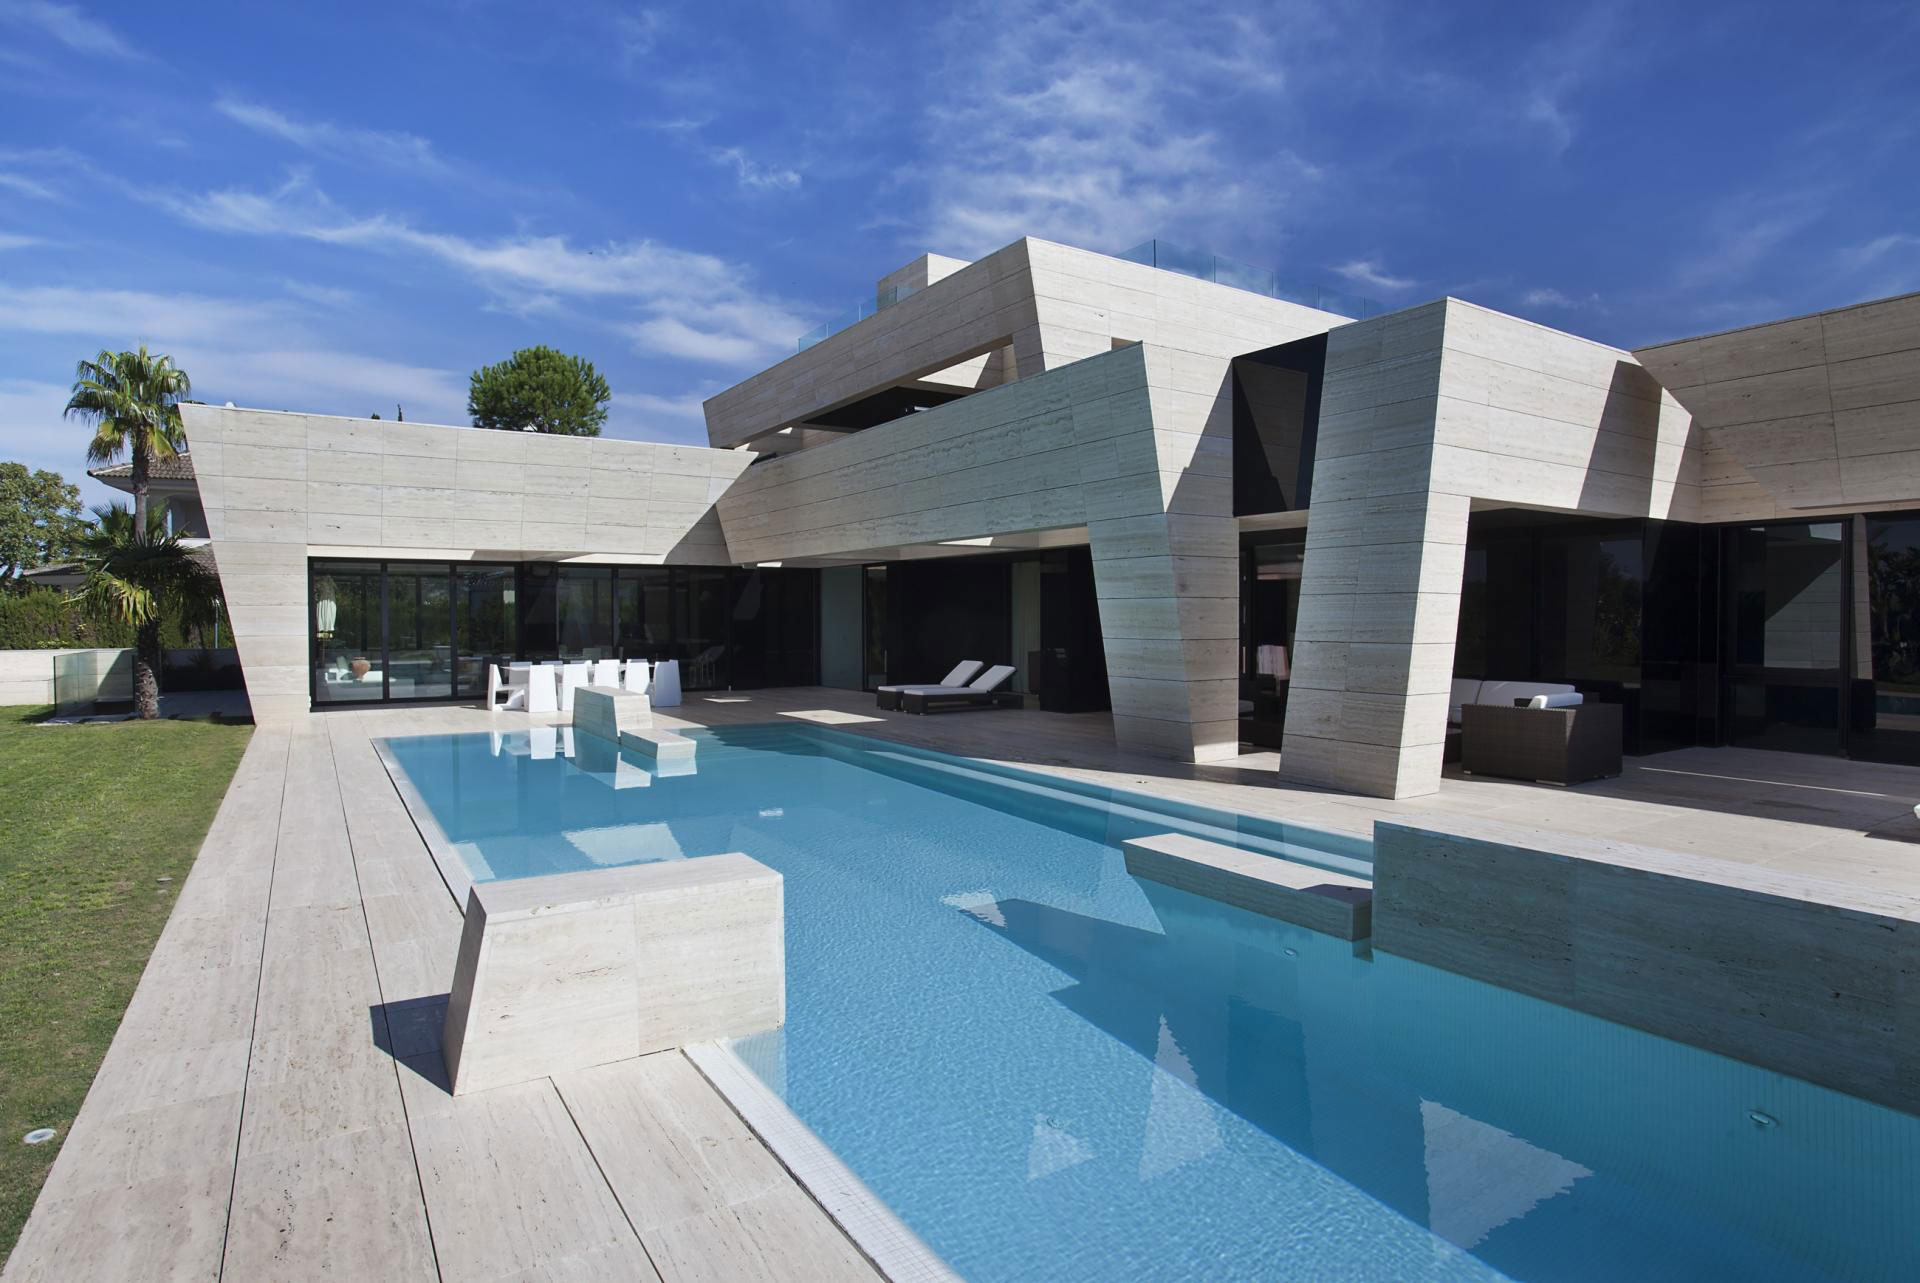 S.V. House by A-cero (2)